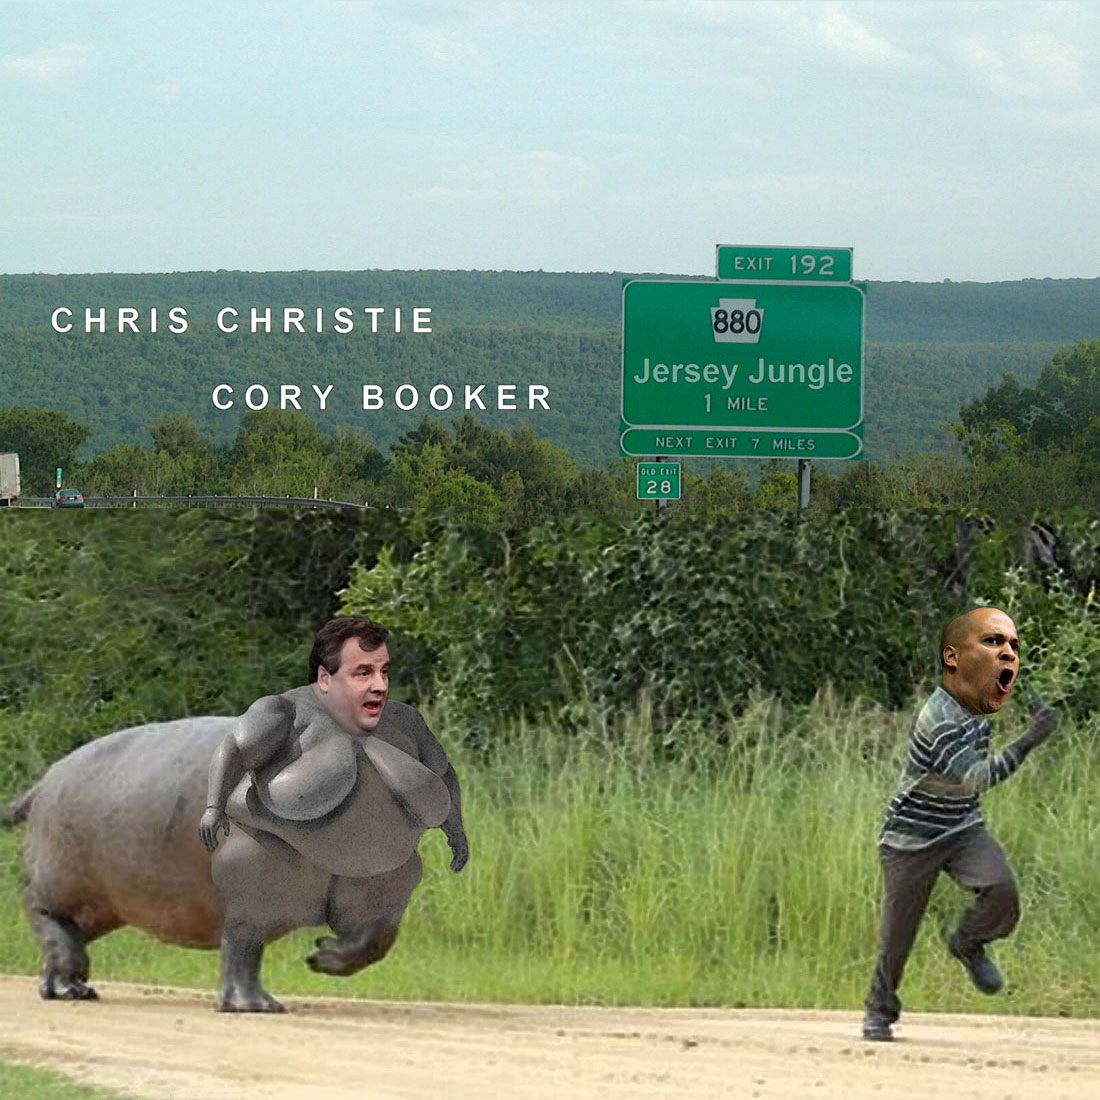 JERSEY JUNGLE starring Chris Christie and Cory Booker